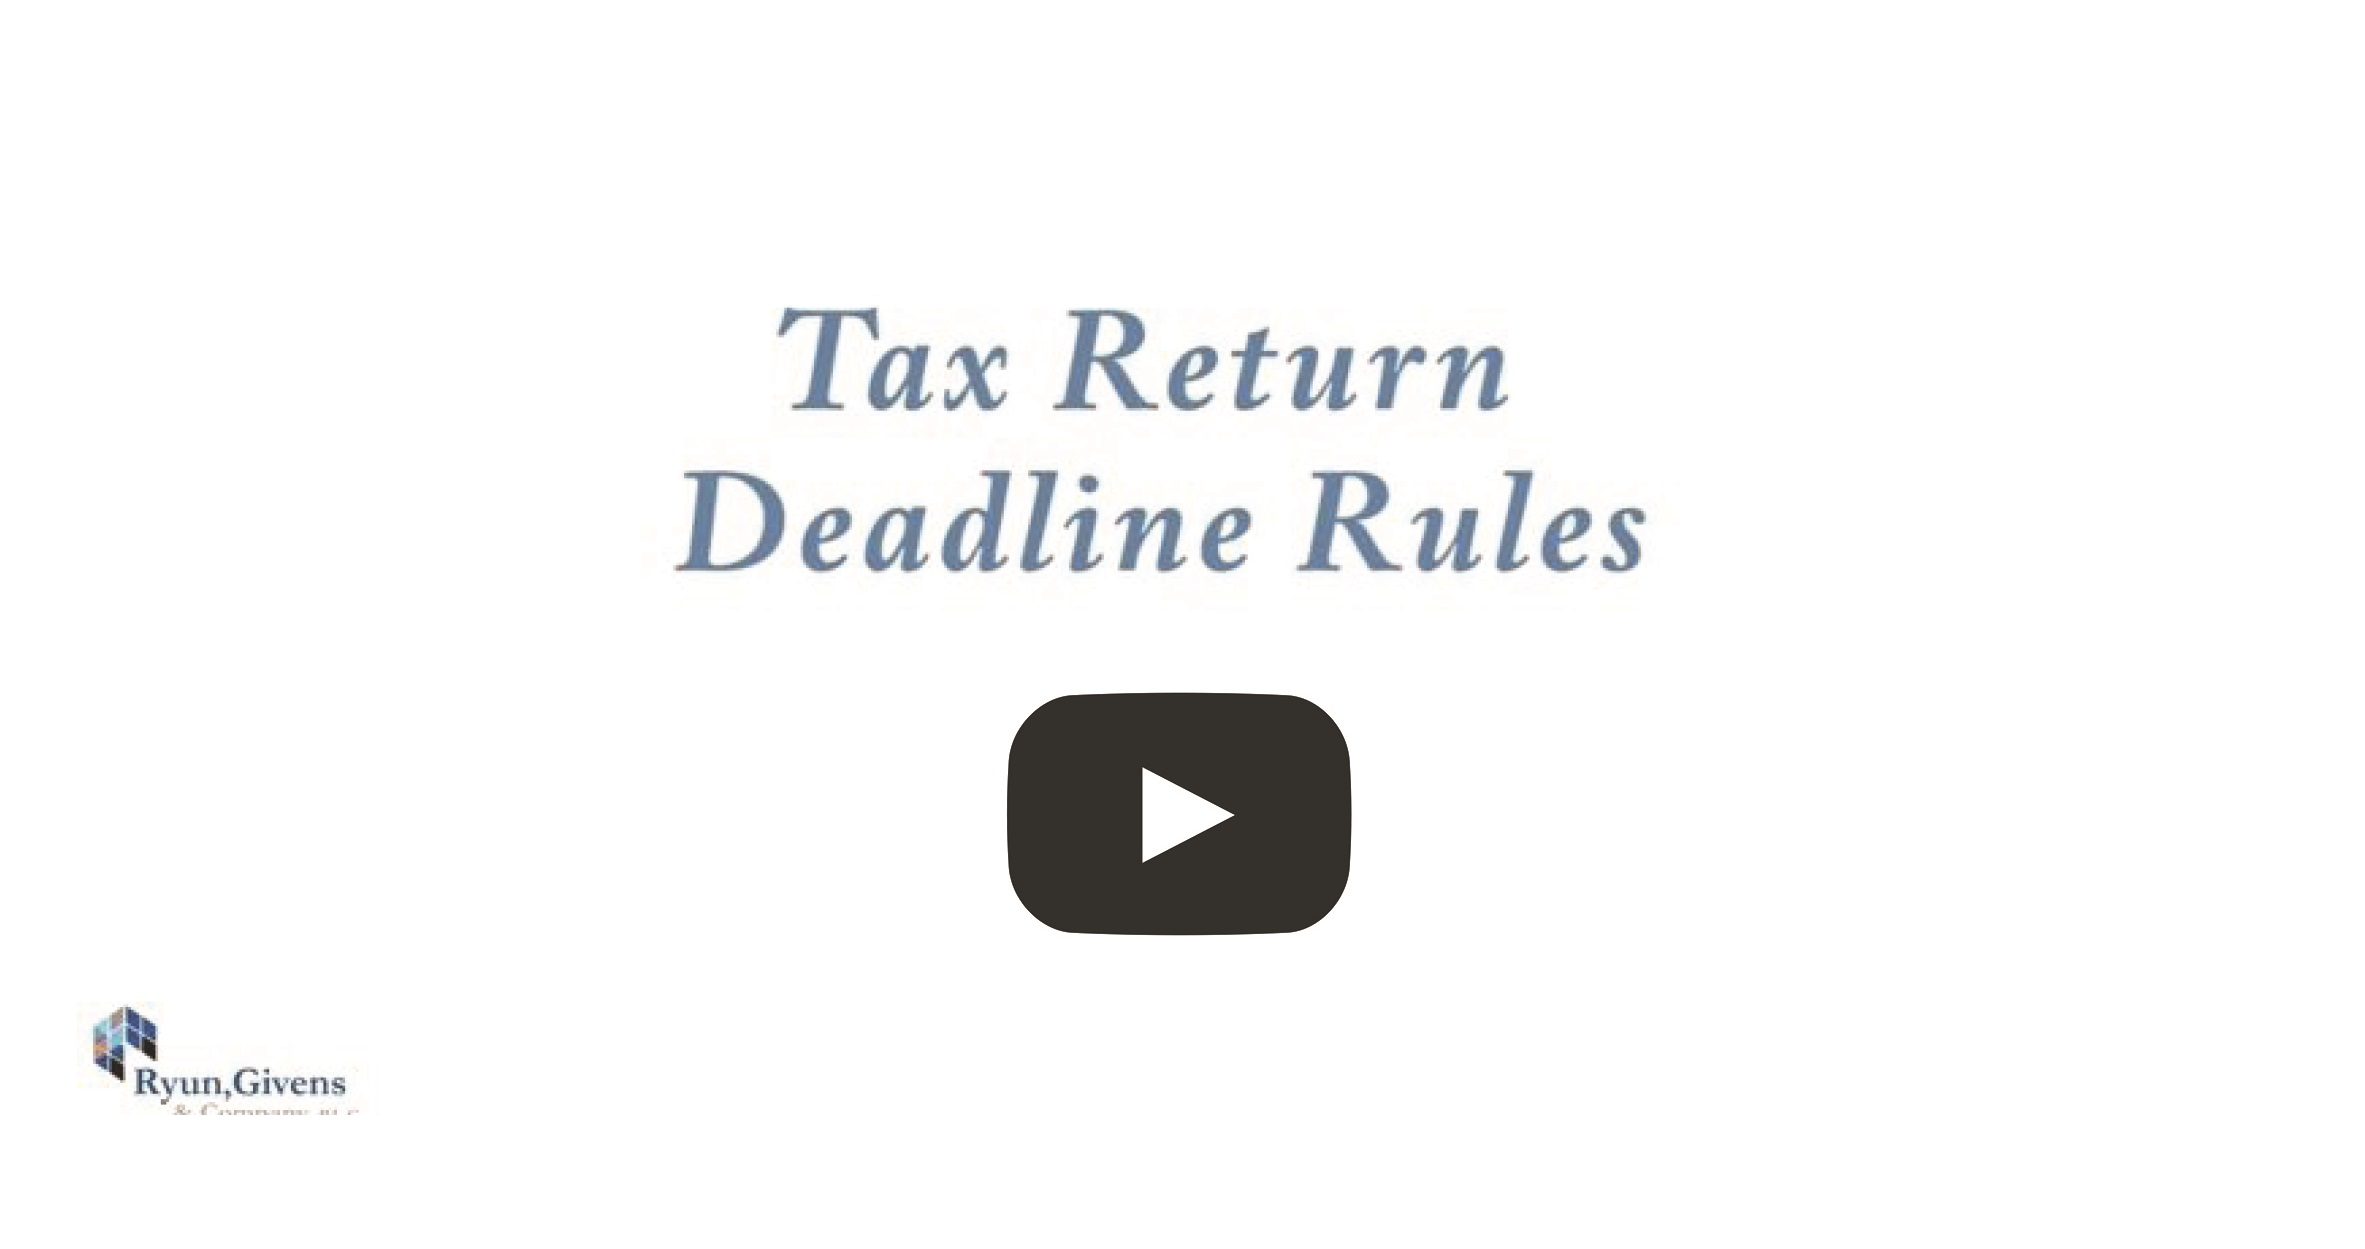 Tax Return Deadline Rules